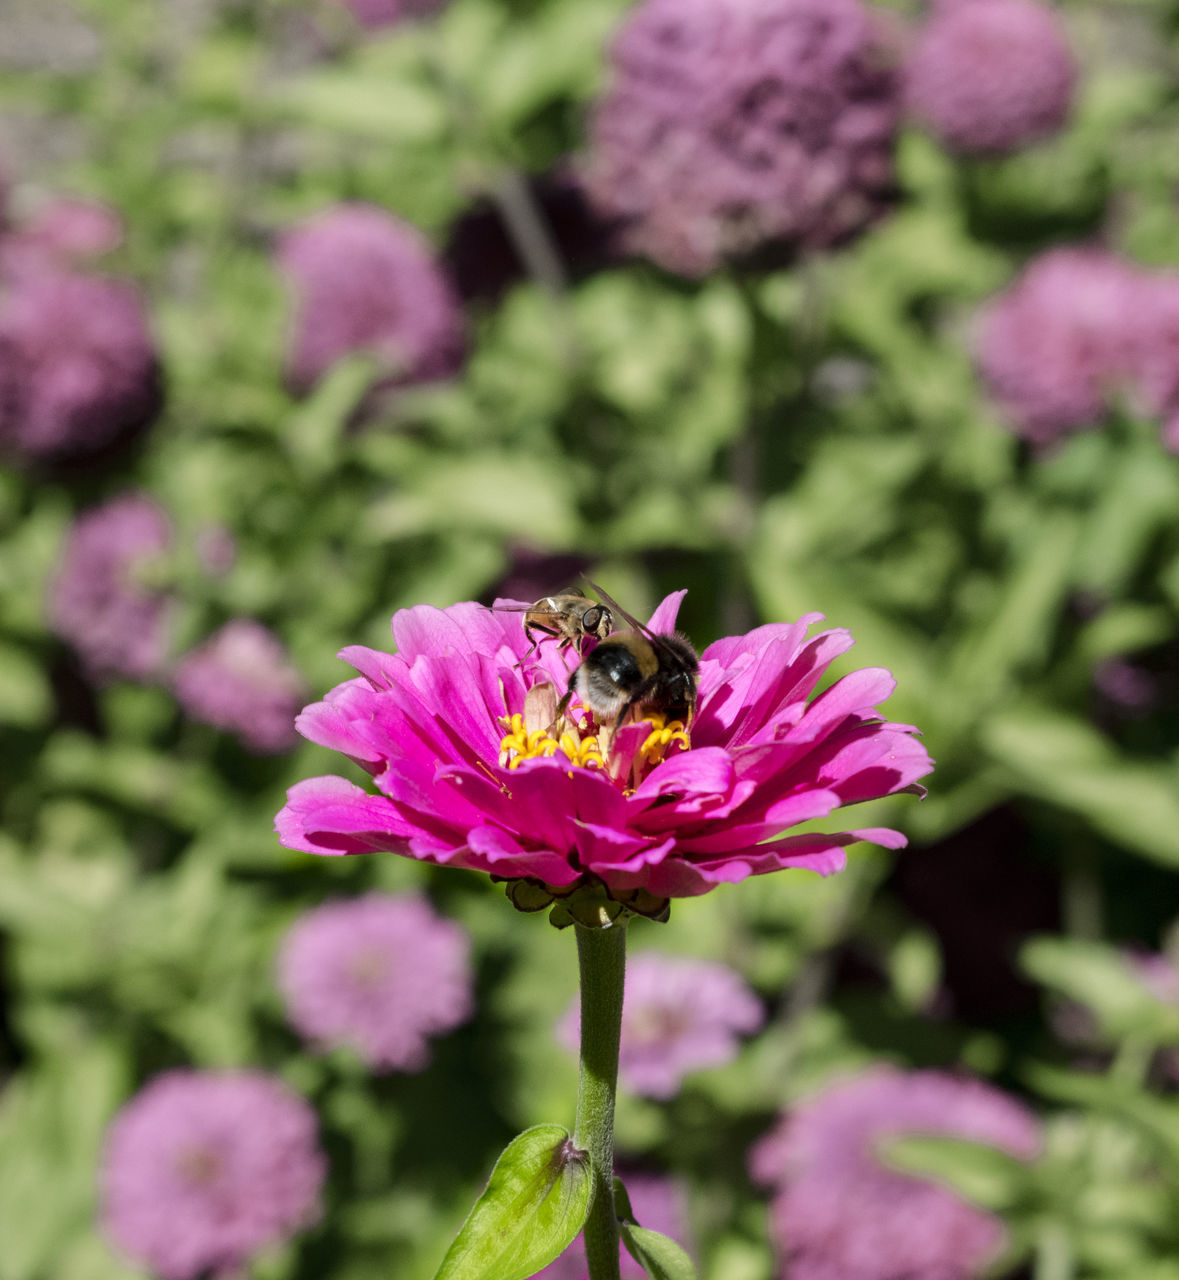 flower, one animal, insect, animal themes, animals in the wild, fragility, petal, nature, growth, freshness, pink color, outdoors, beauty in nature, no people, plant, day, animal wildlife, purple, bee, flower head, close-up, pollination, bumblebee, blooming